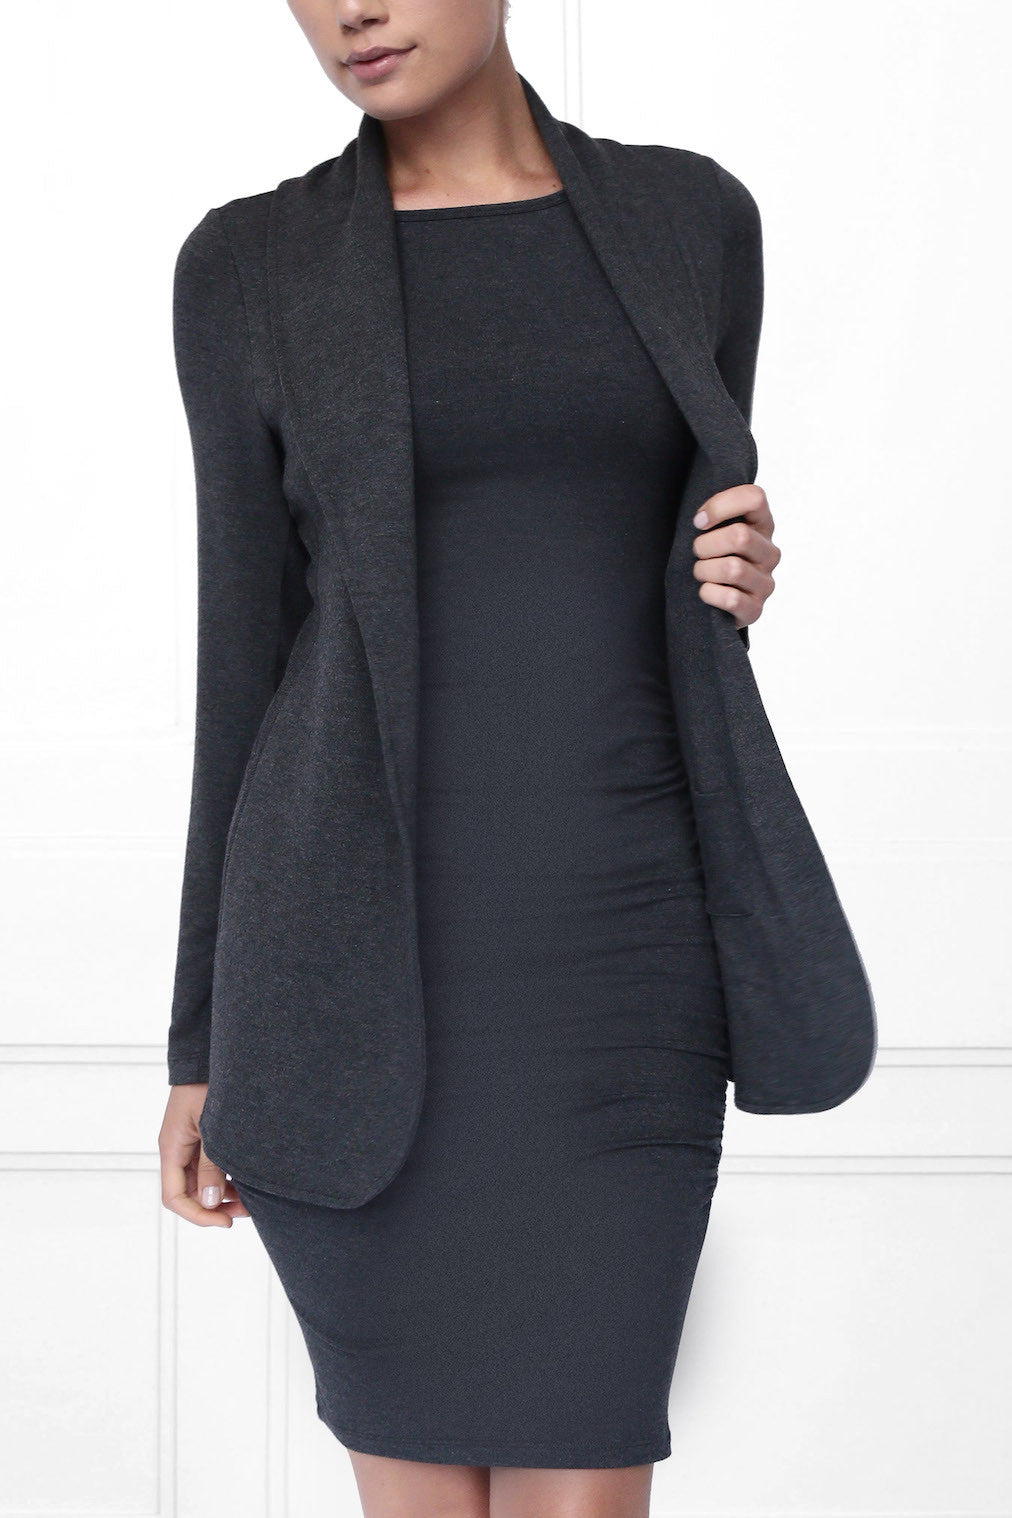 Whitney Luxe French Terry Fleece Car Coat - State & Manor